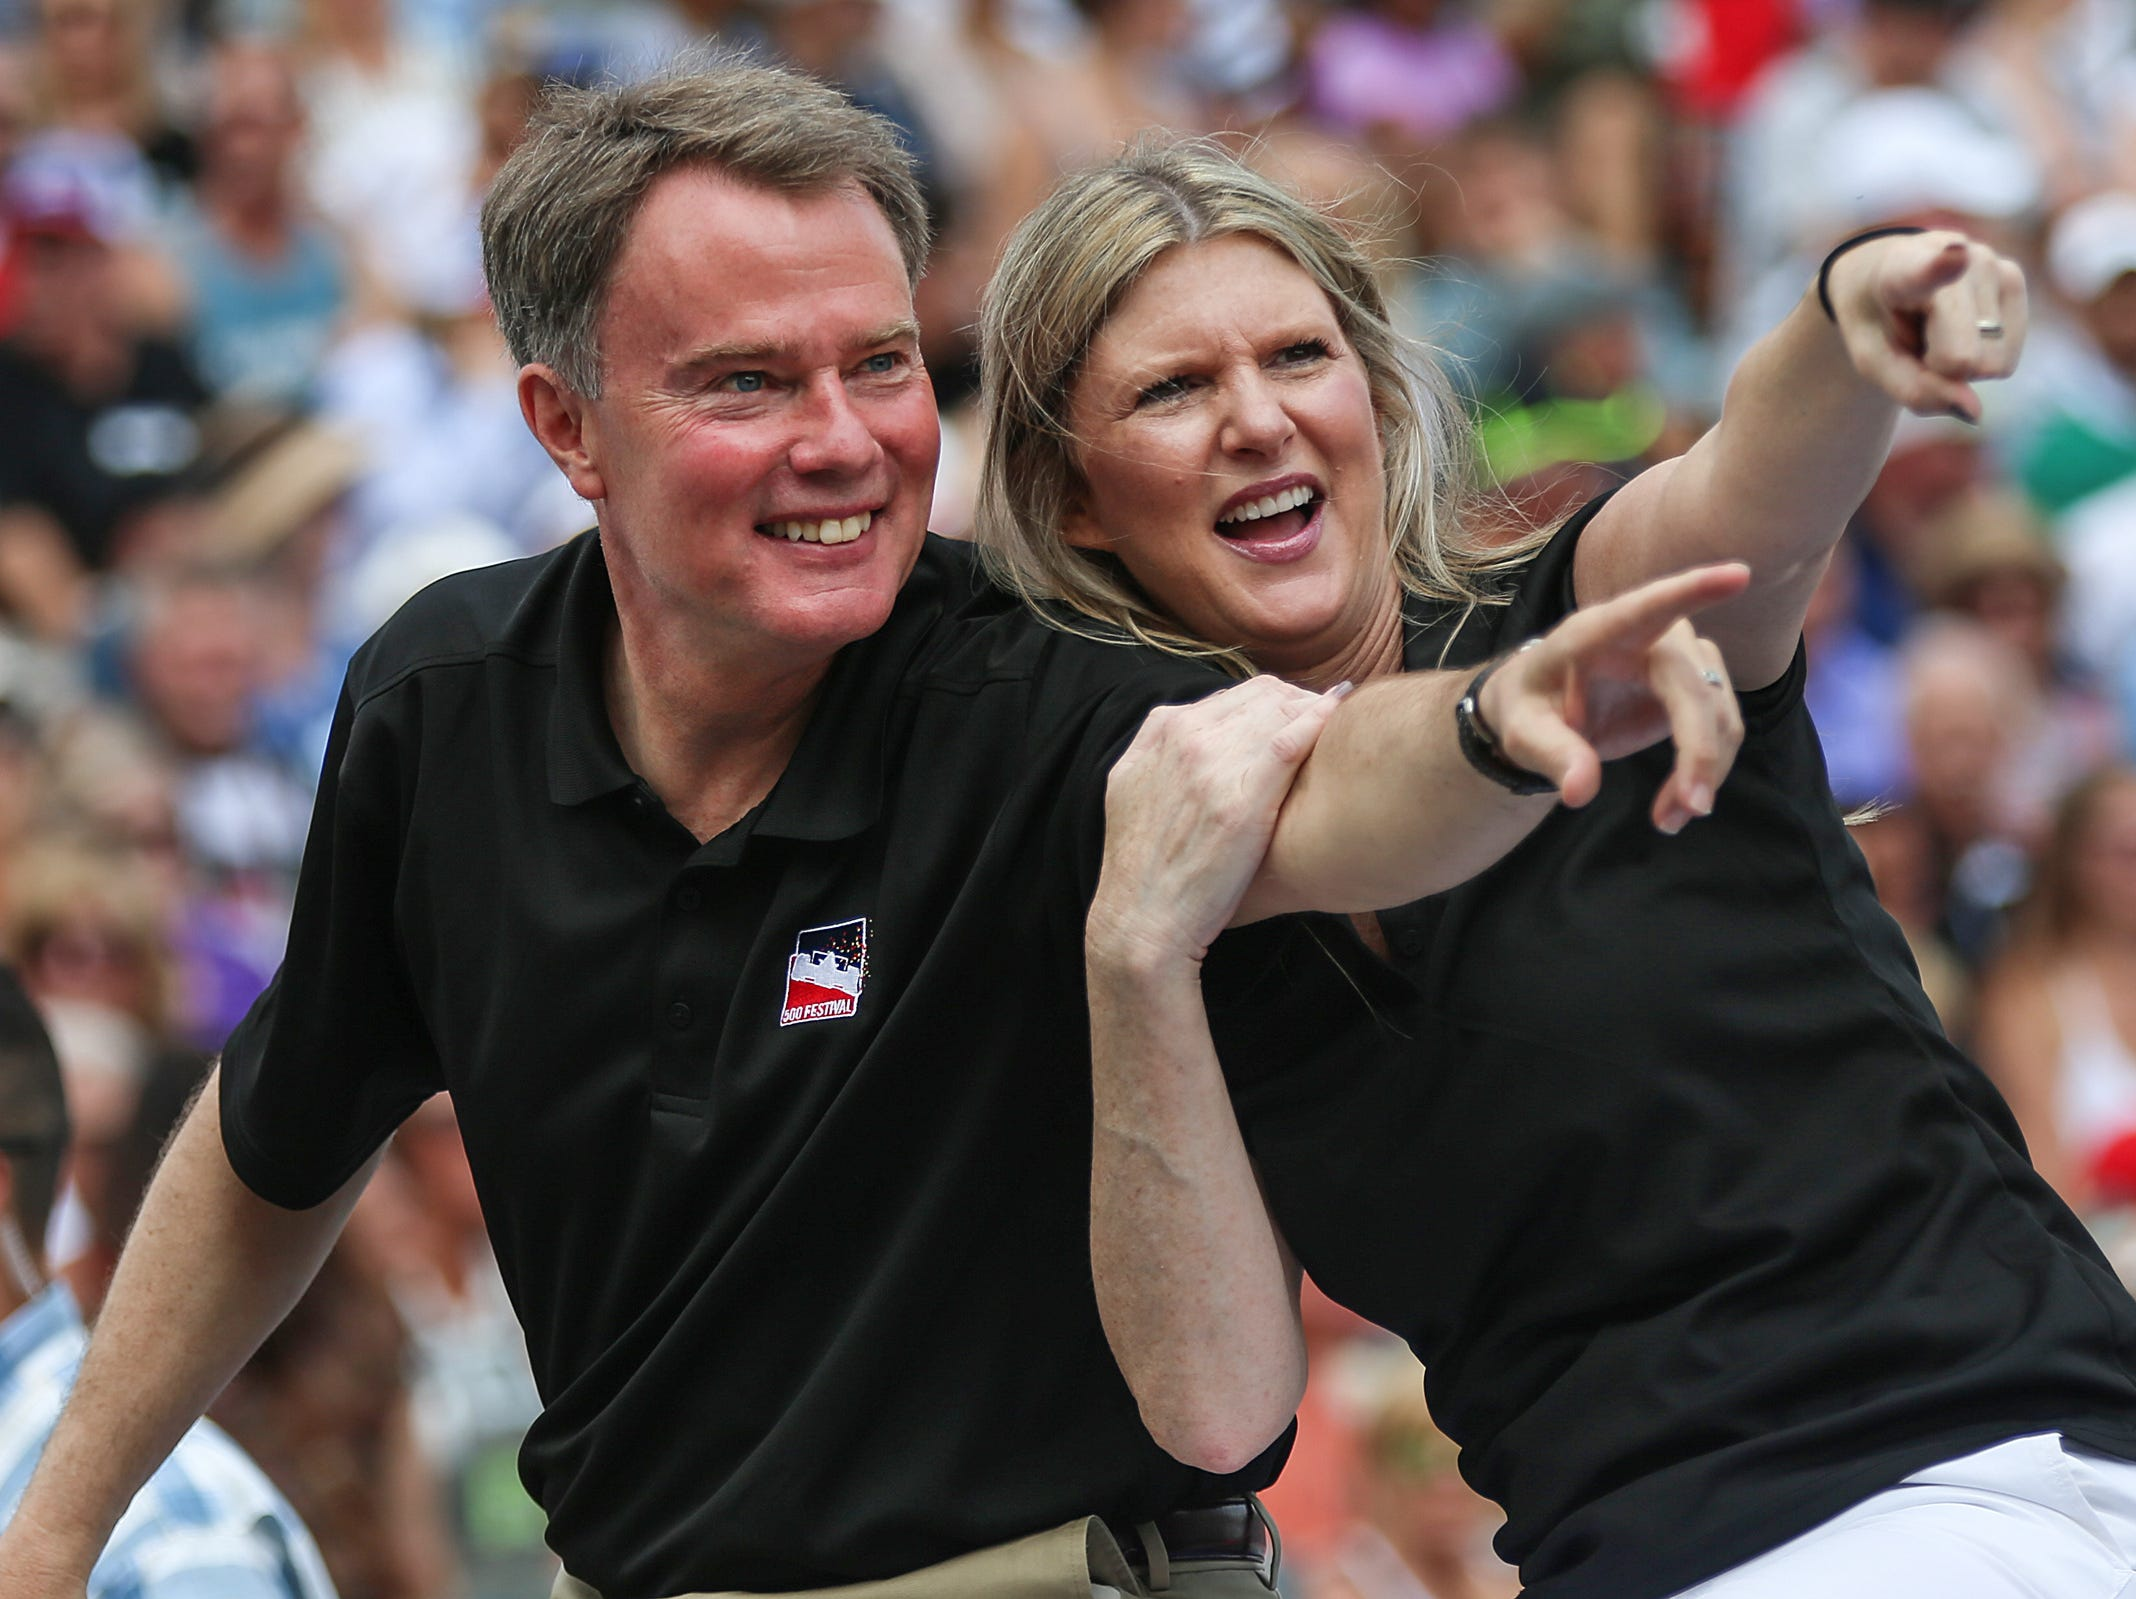 From left, Mayor Joe Hogsett and his wife Stephanie ride in the 500 Festival Parade in downtown Indianapolis, Saturday, May 26, 2018. The mid-day parade takes place a day before the Indy 500 mile race.